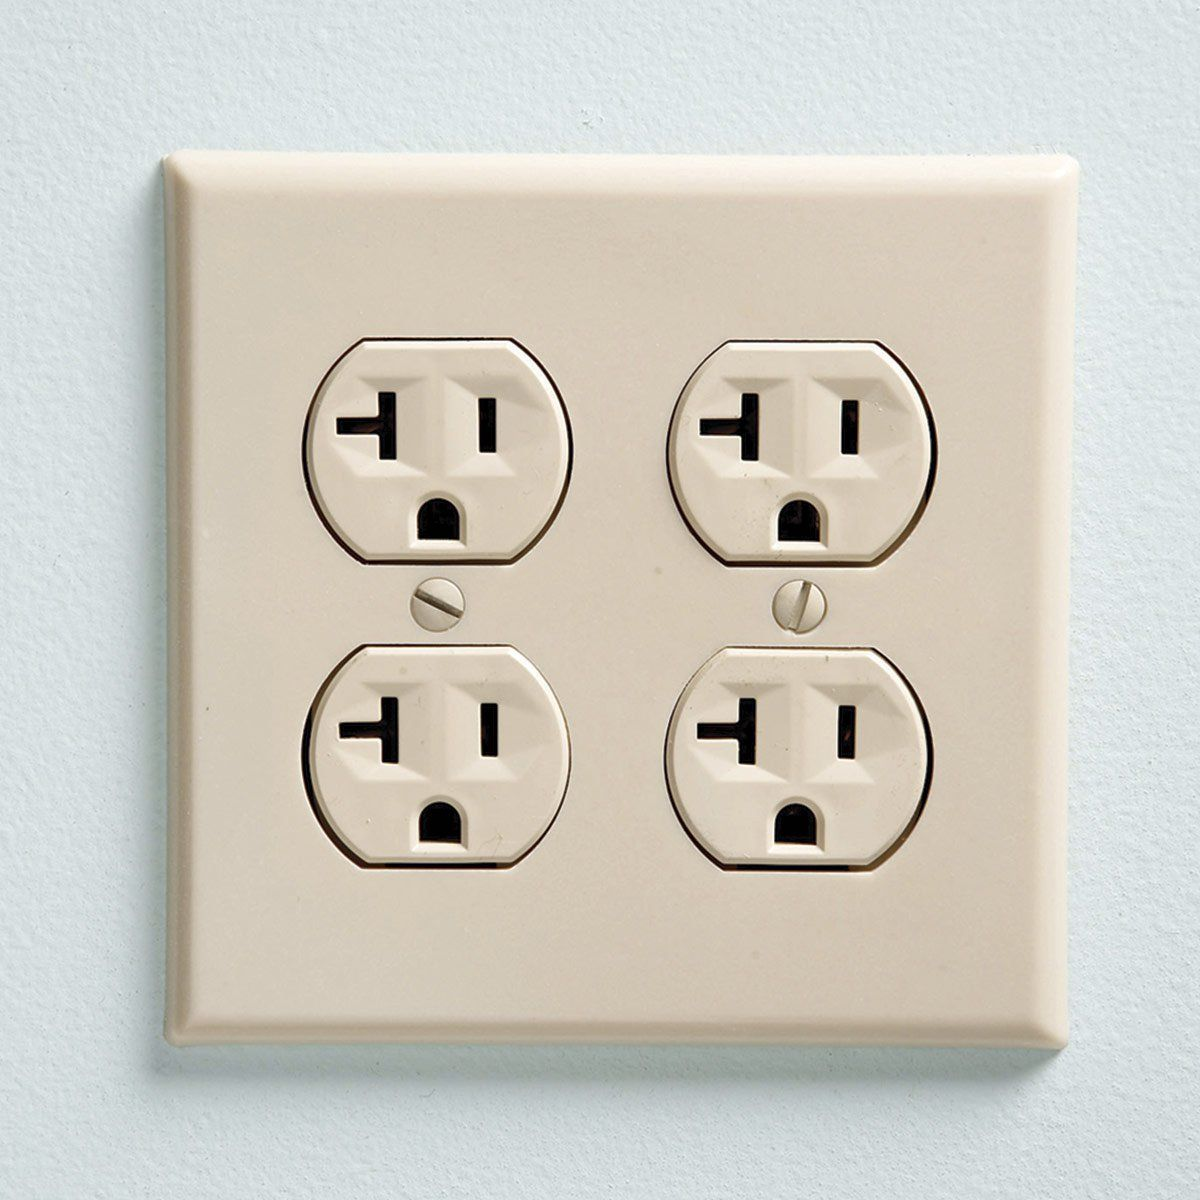 Which Is The Correct And Incorrect Way To Install An Electrical Outlet With Images Electrical Outlets Electricity Home Electrical Wiring